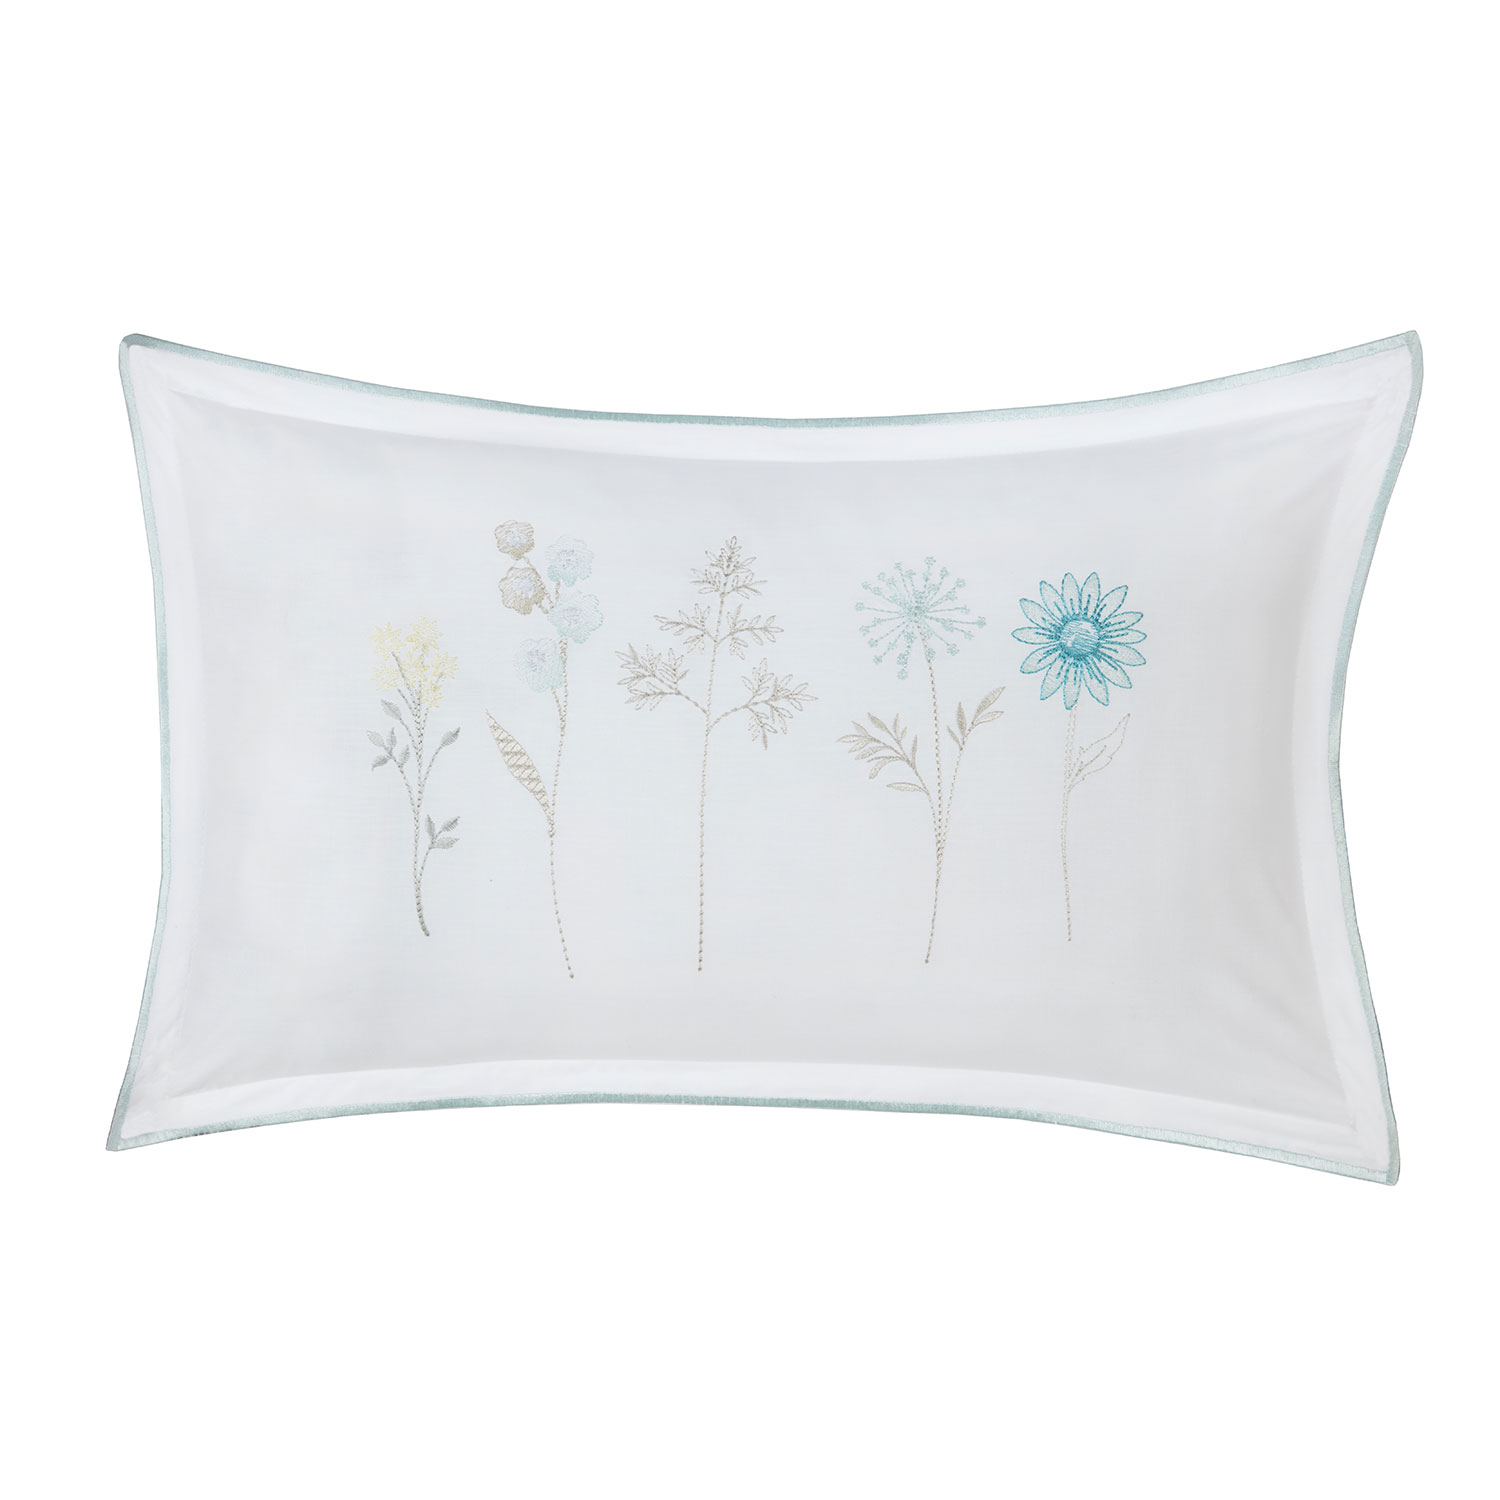 Imogen Duck Egg Luxury Embroidered Filled Boudoir Cushion